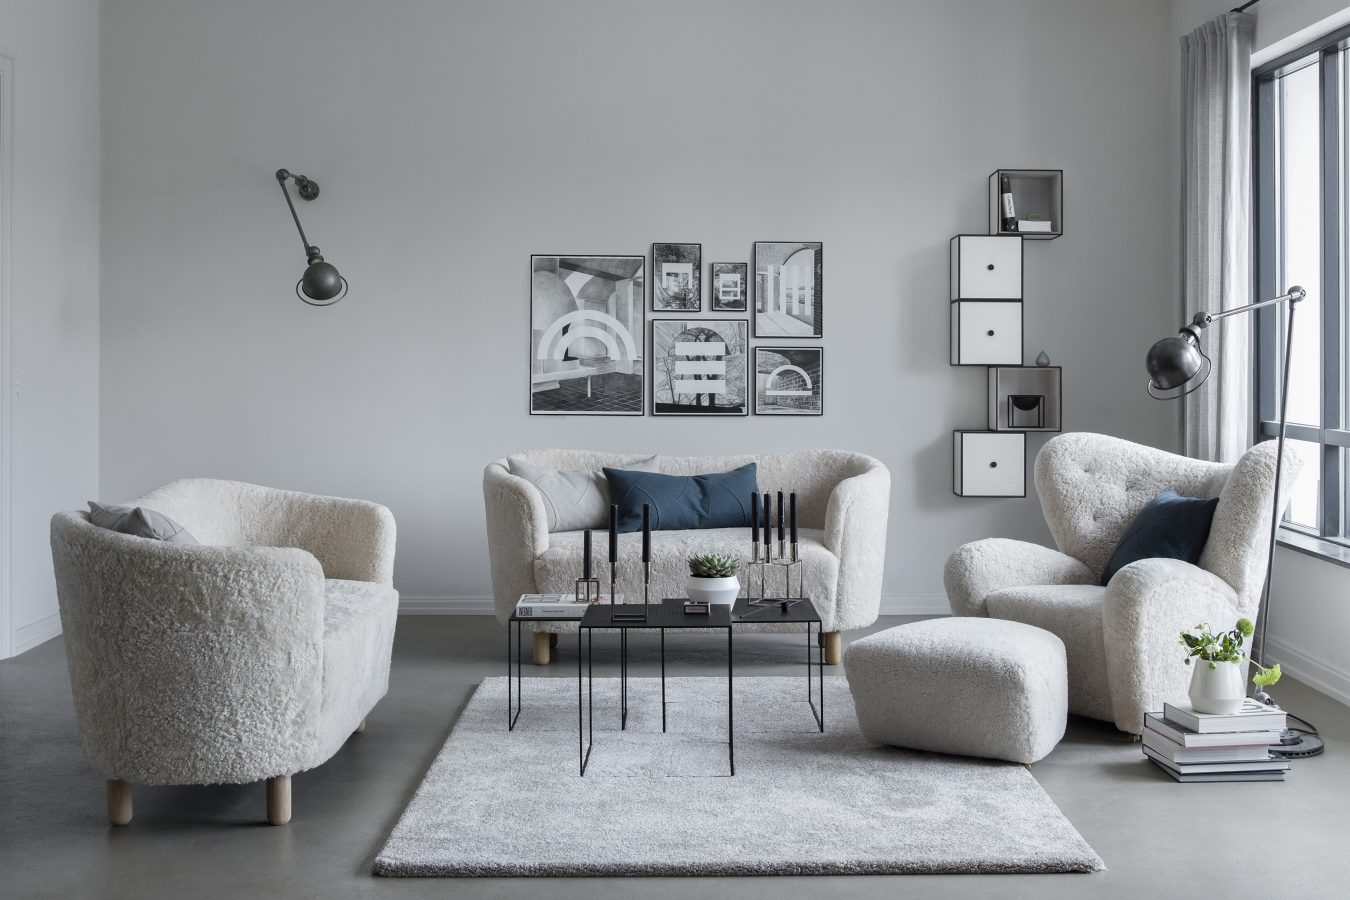 Do you constantly make new interior design finds do you like to decorate your home and your office space according to different seasons or eras of art